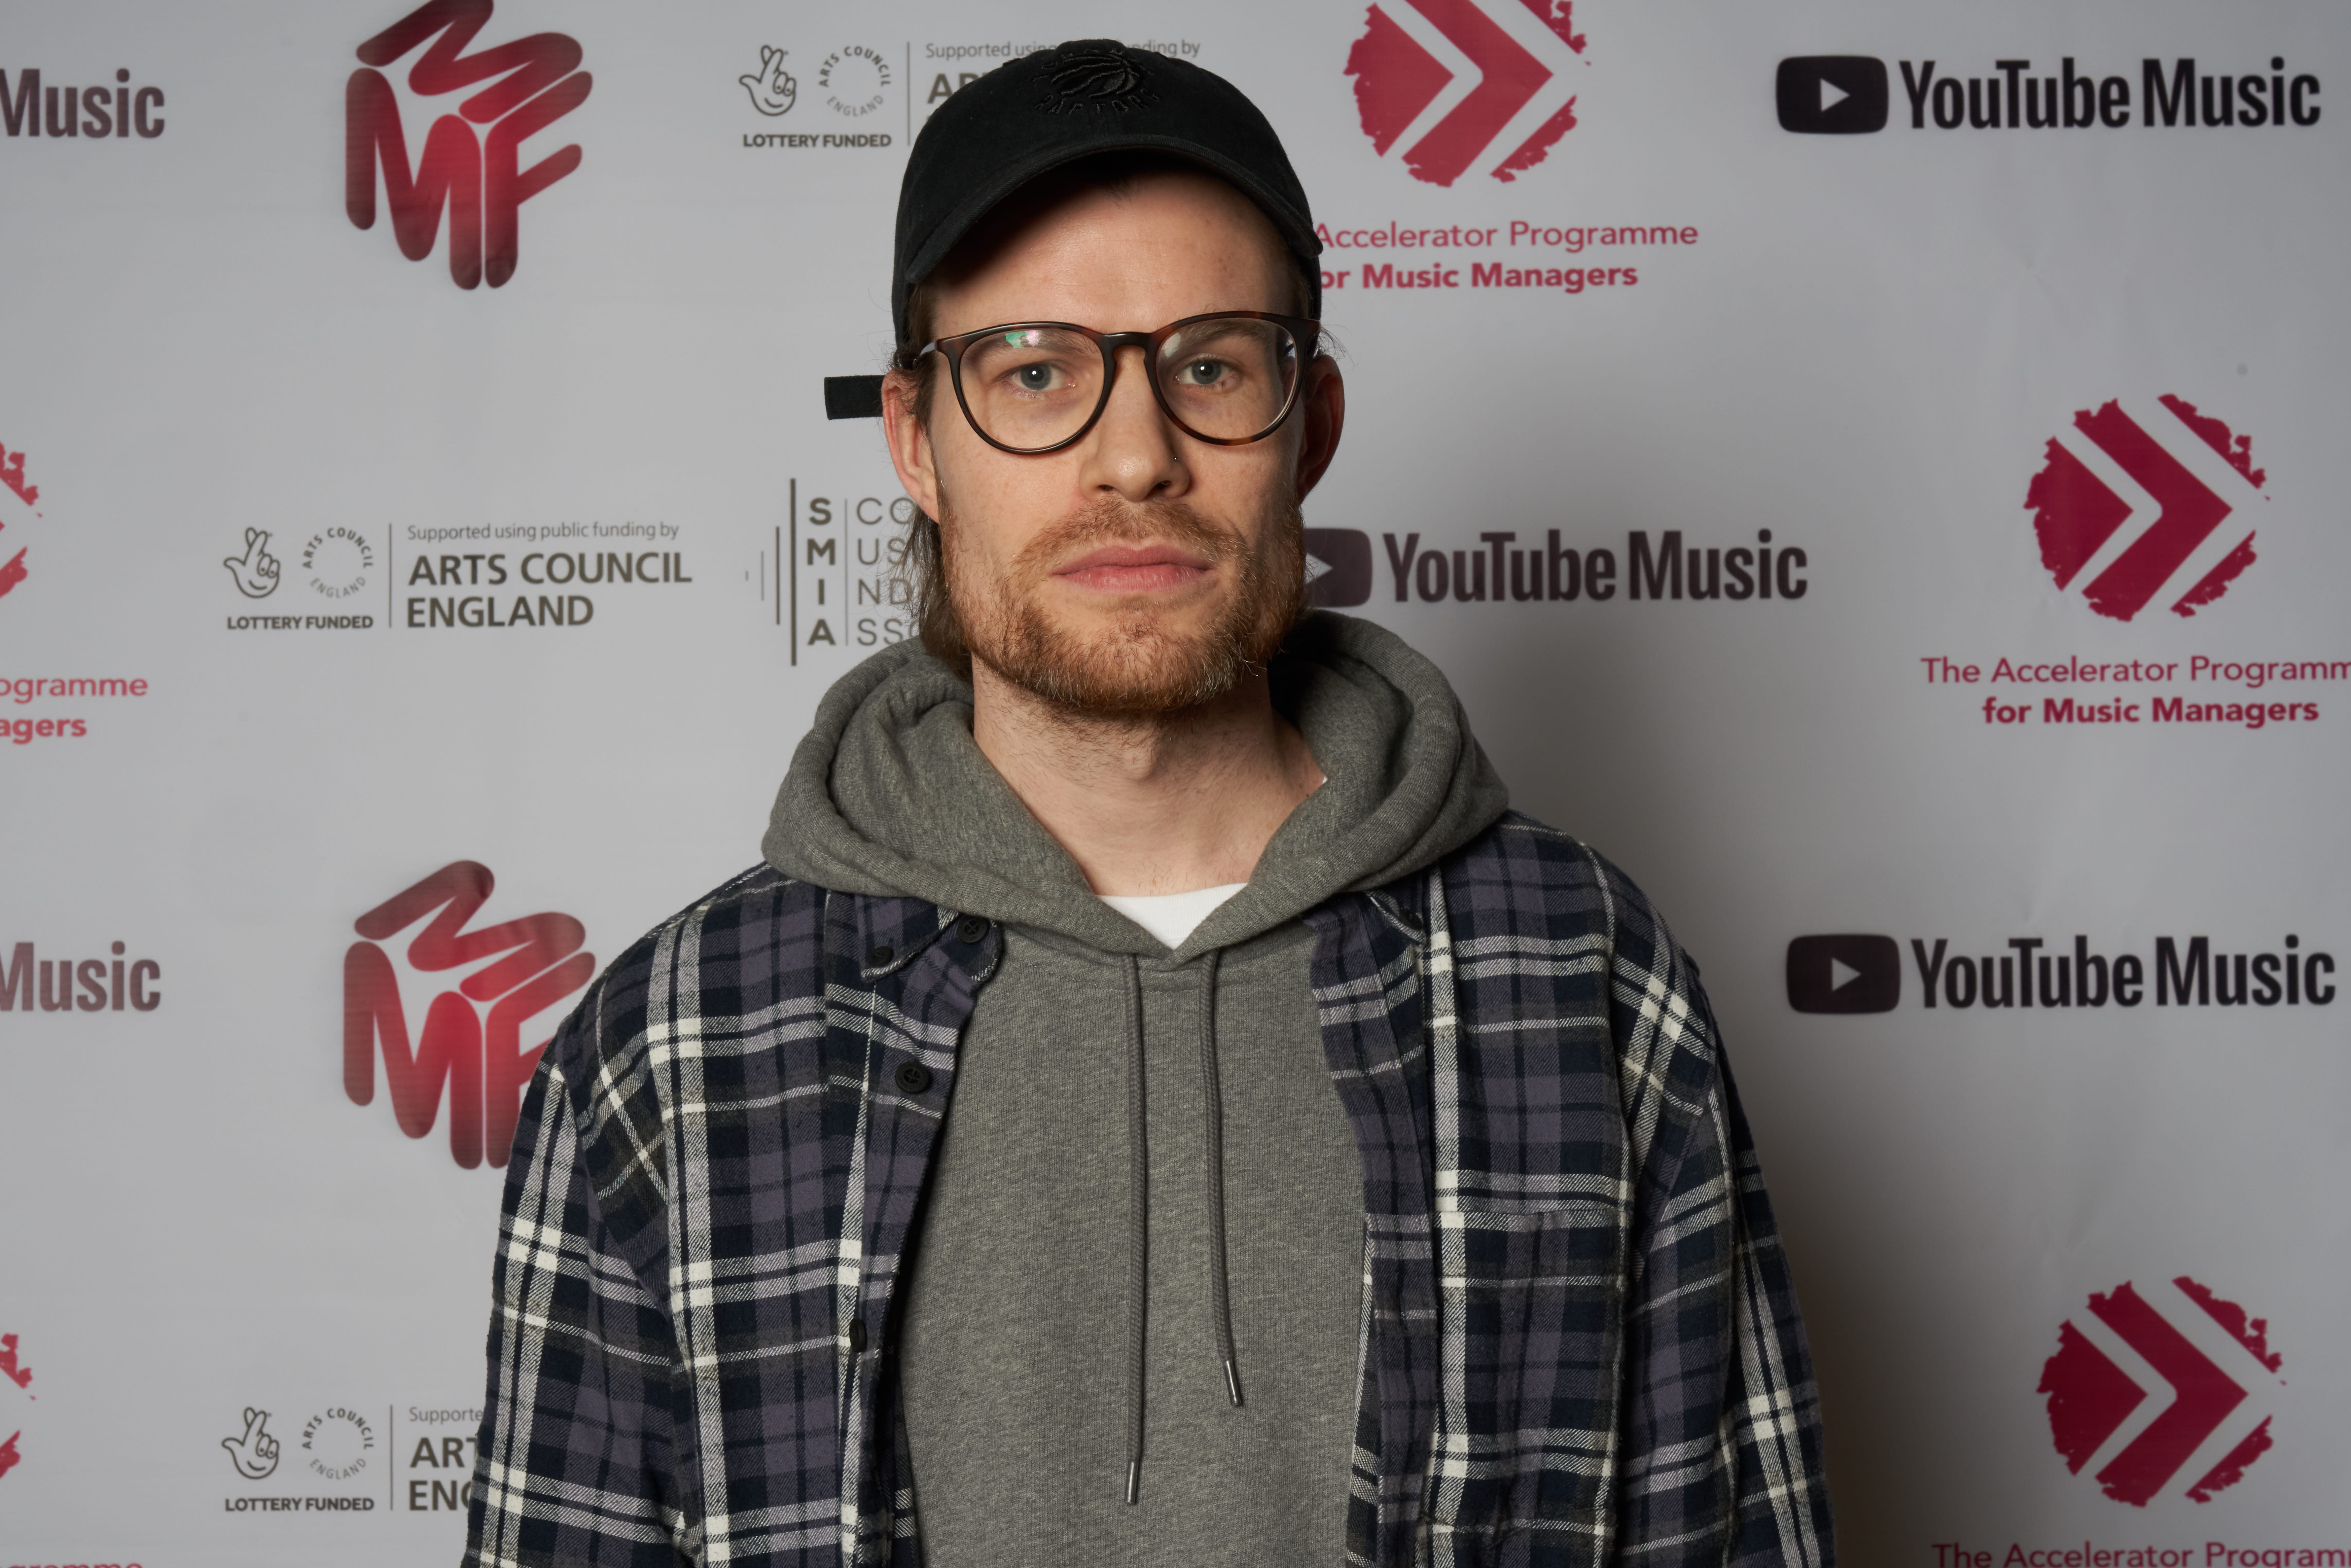 Music Managers Forum & YouTube Music Unveil Beneficiaries Of The